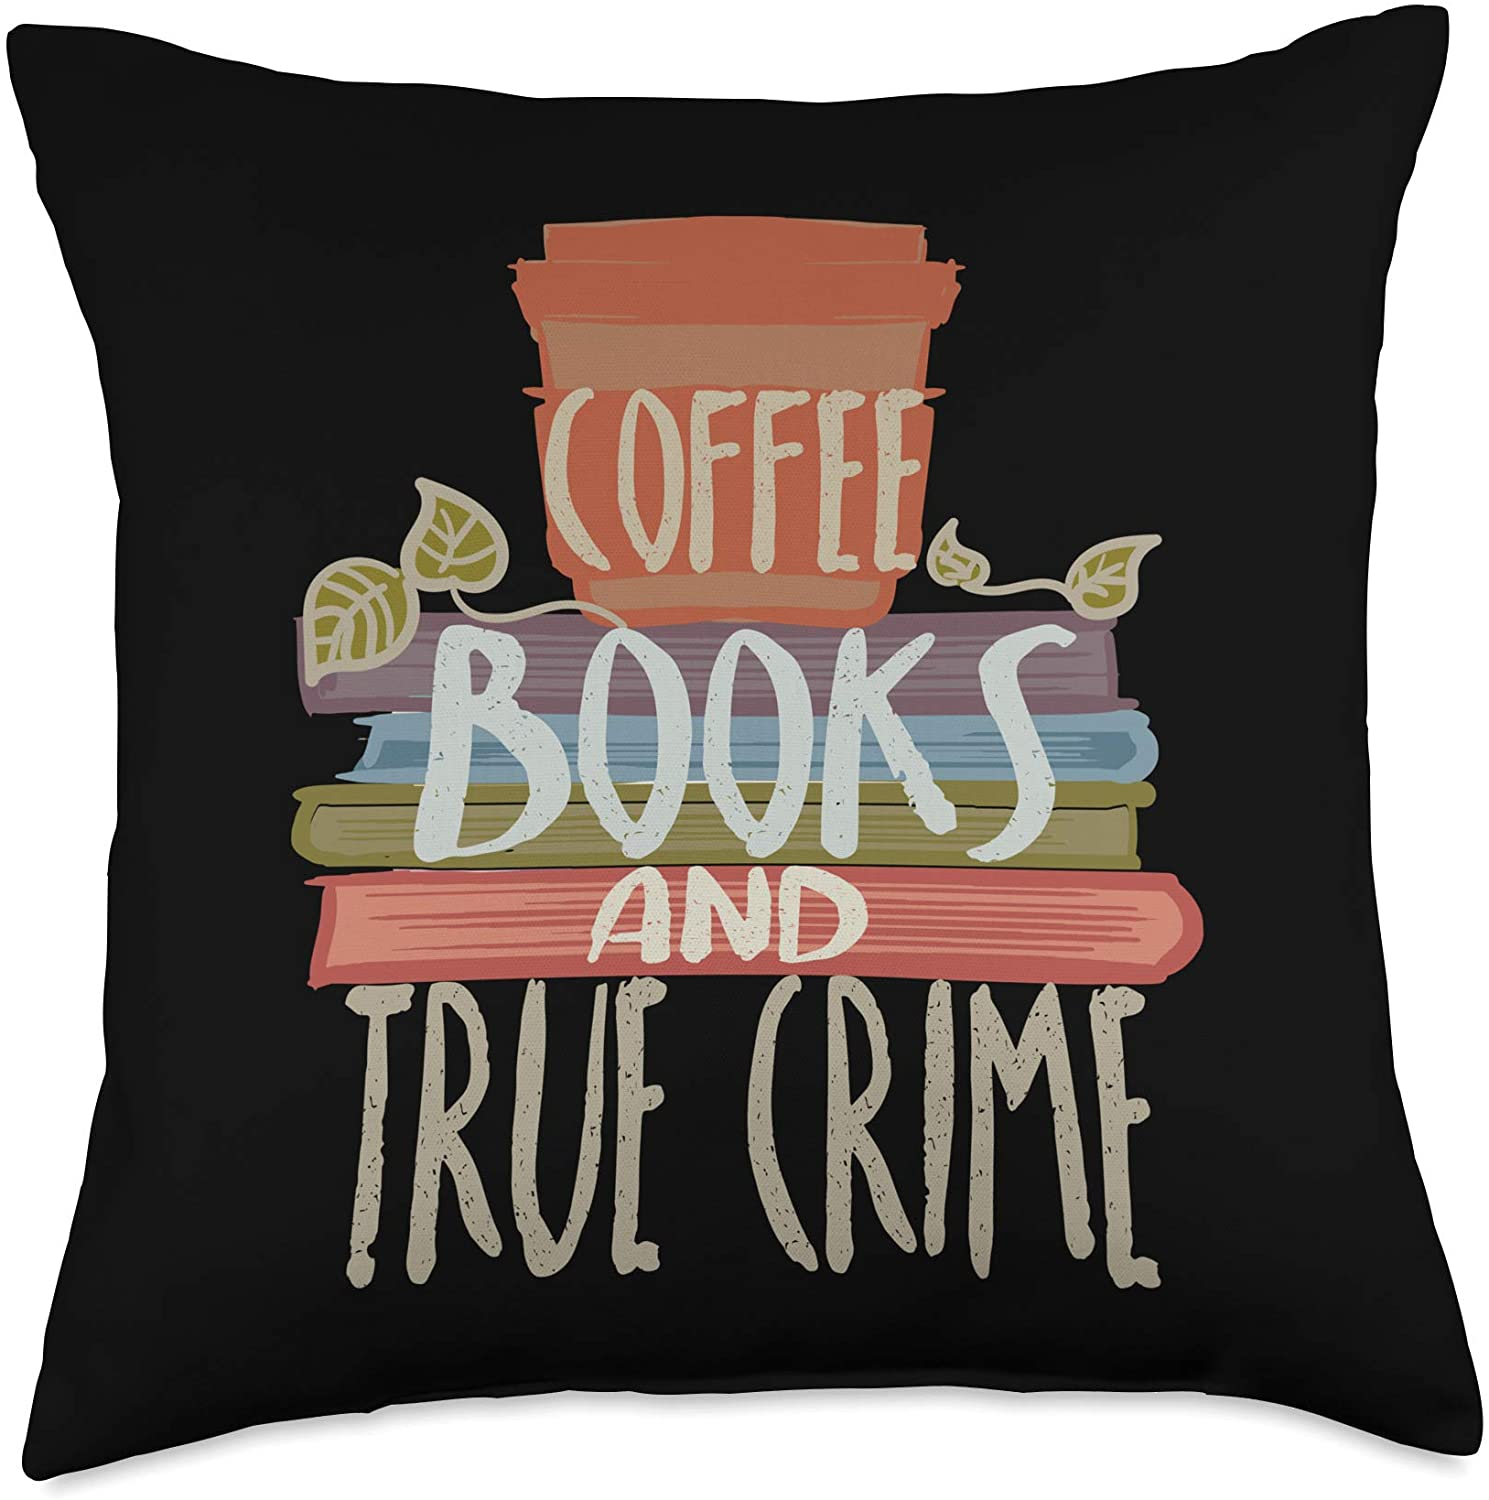 true-crime-gifts-pillow